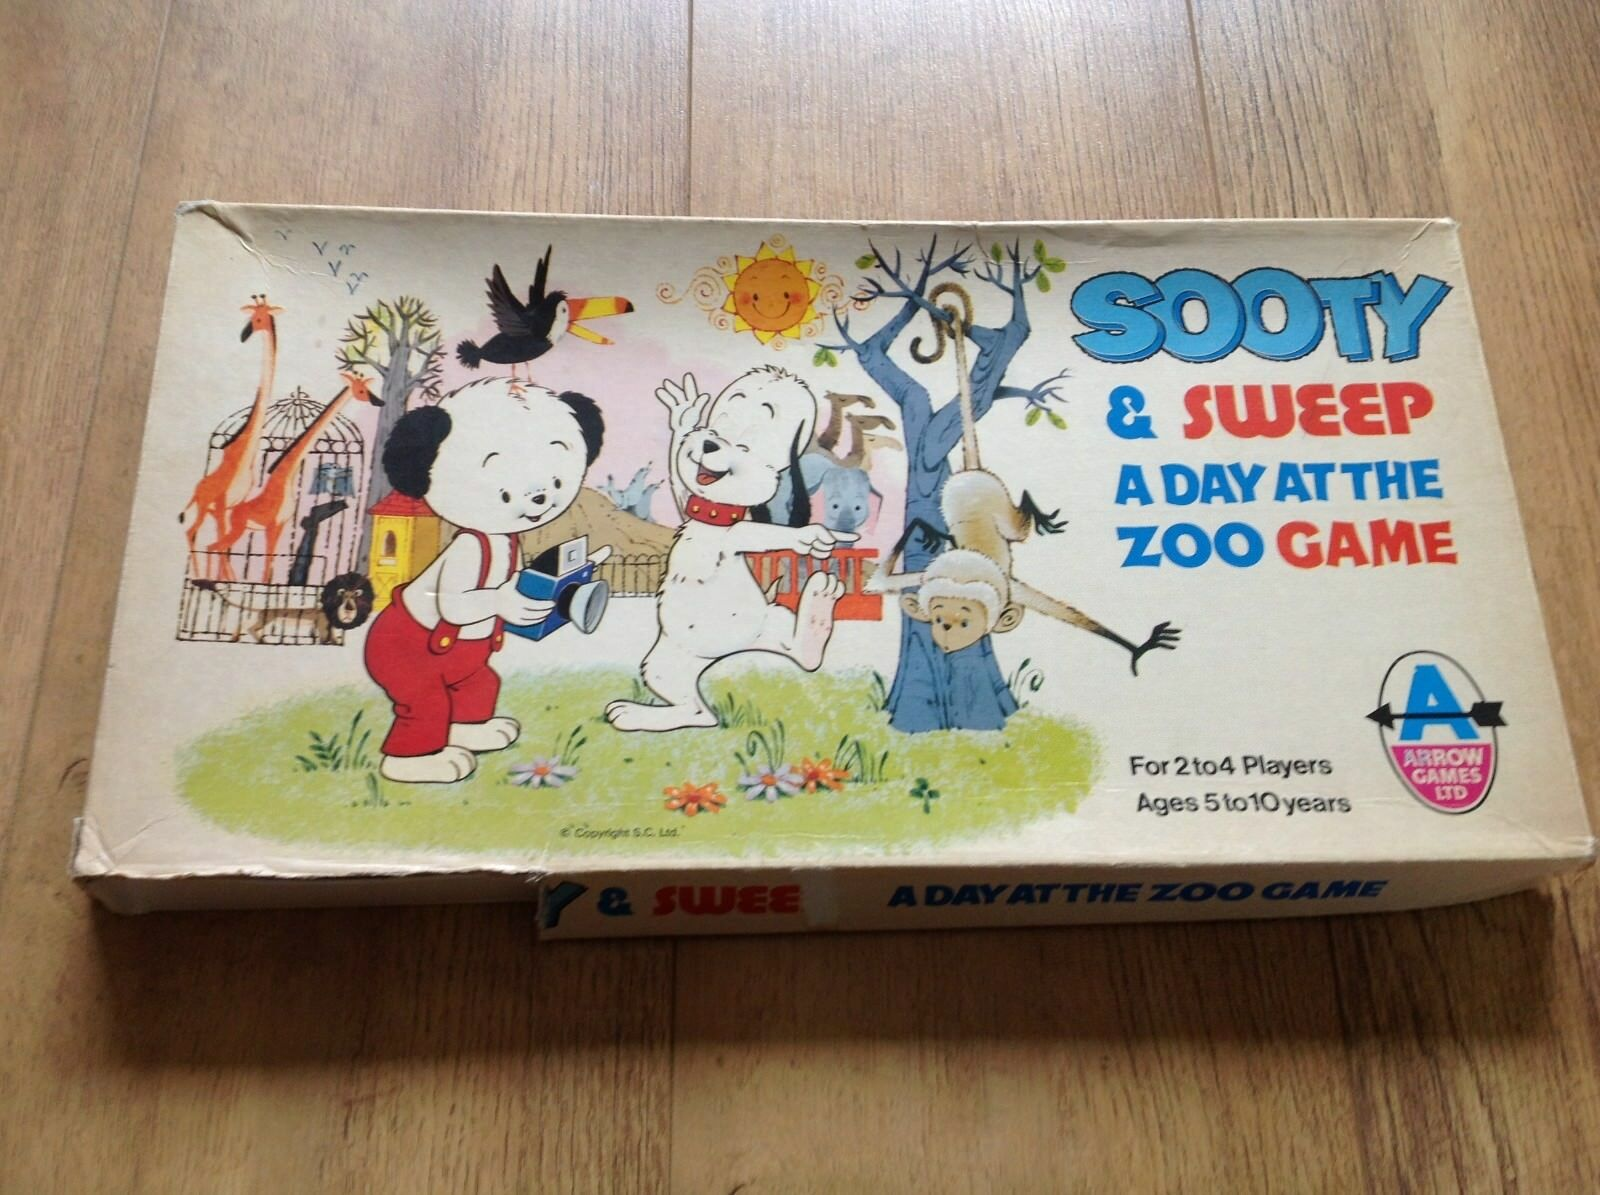 Sooty and Sweep - A day at the zoo game (Arrow Games Ltd)